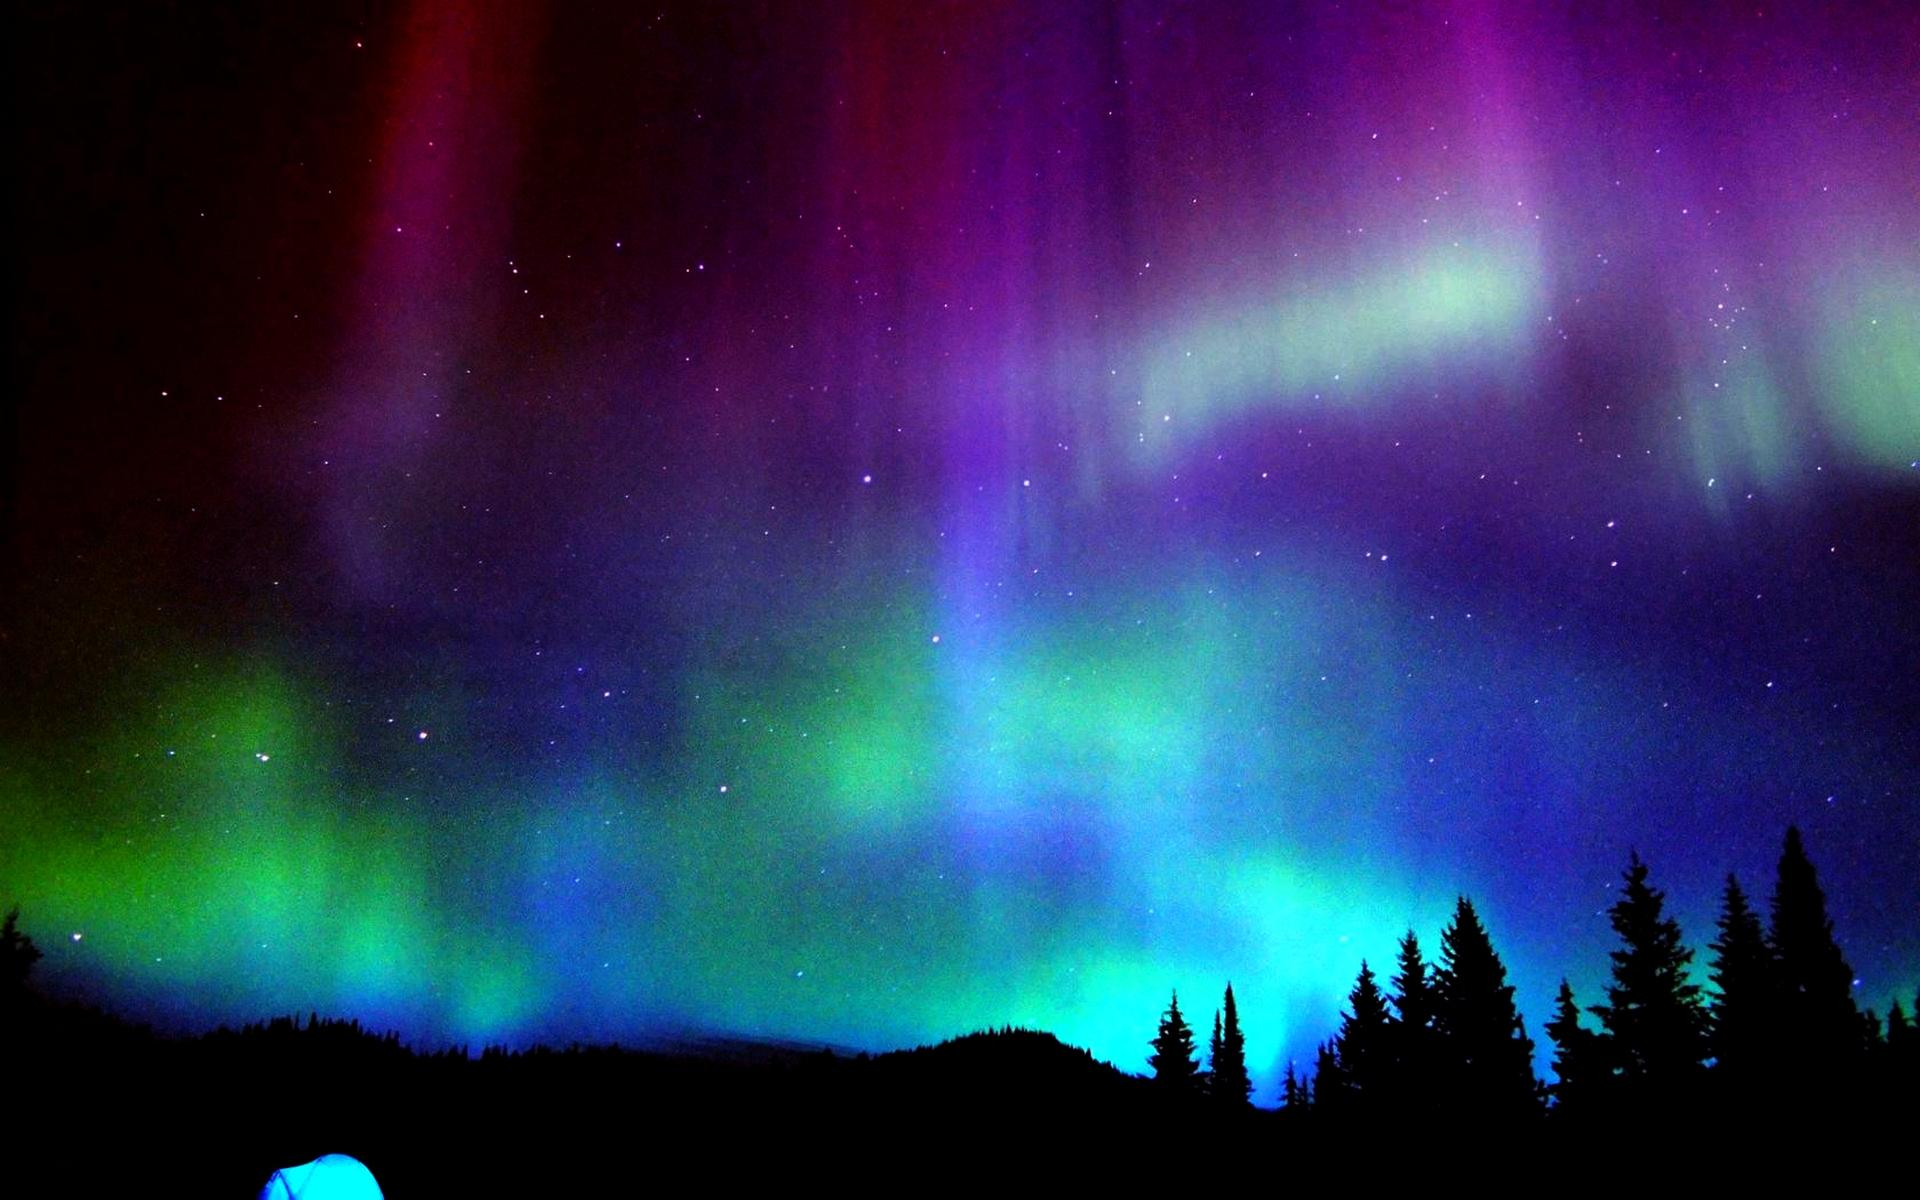 Celebrating the Northern Lights of Aurora Borealis From Behind the 1920x1200